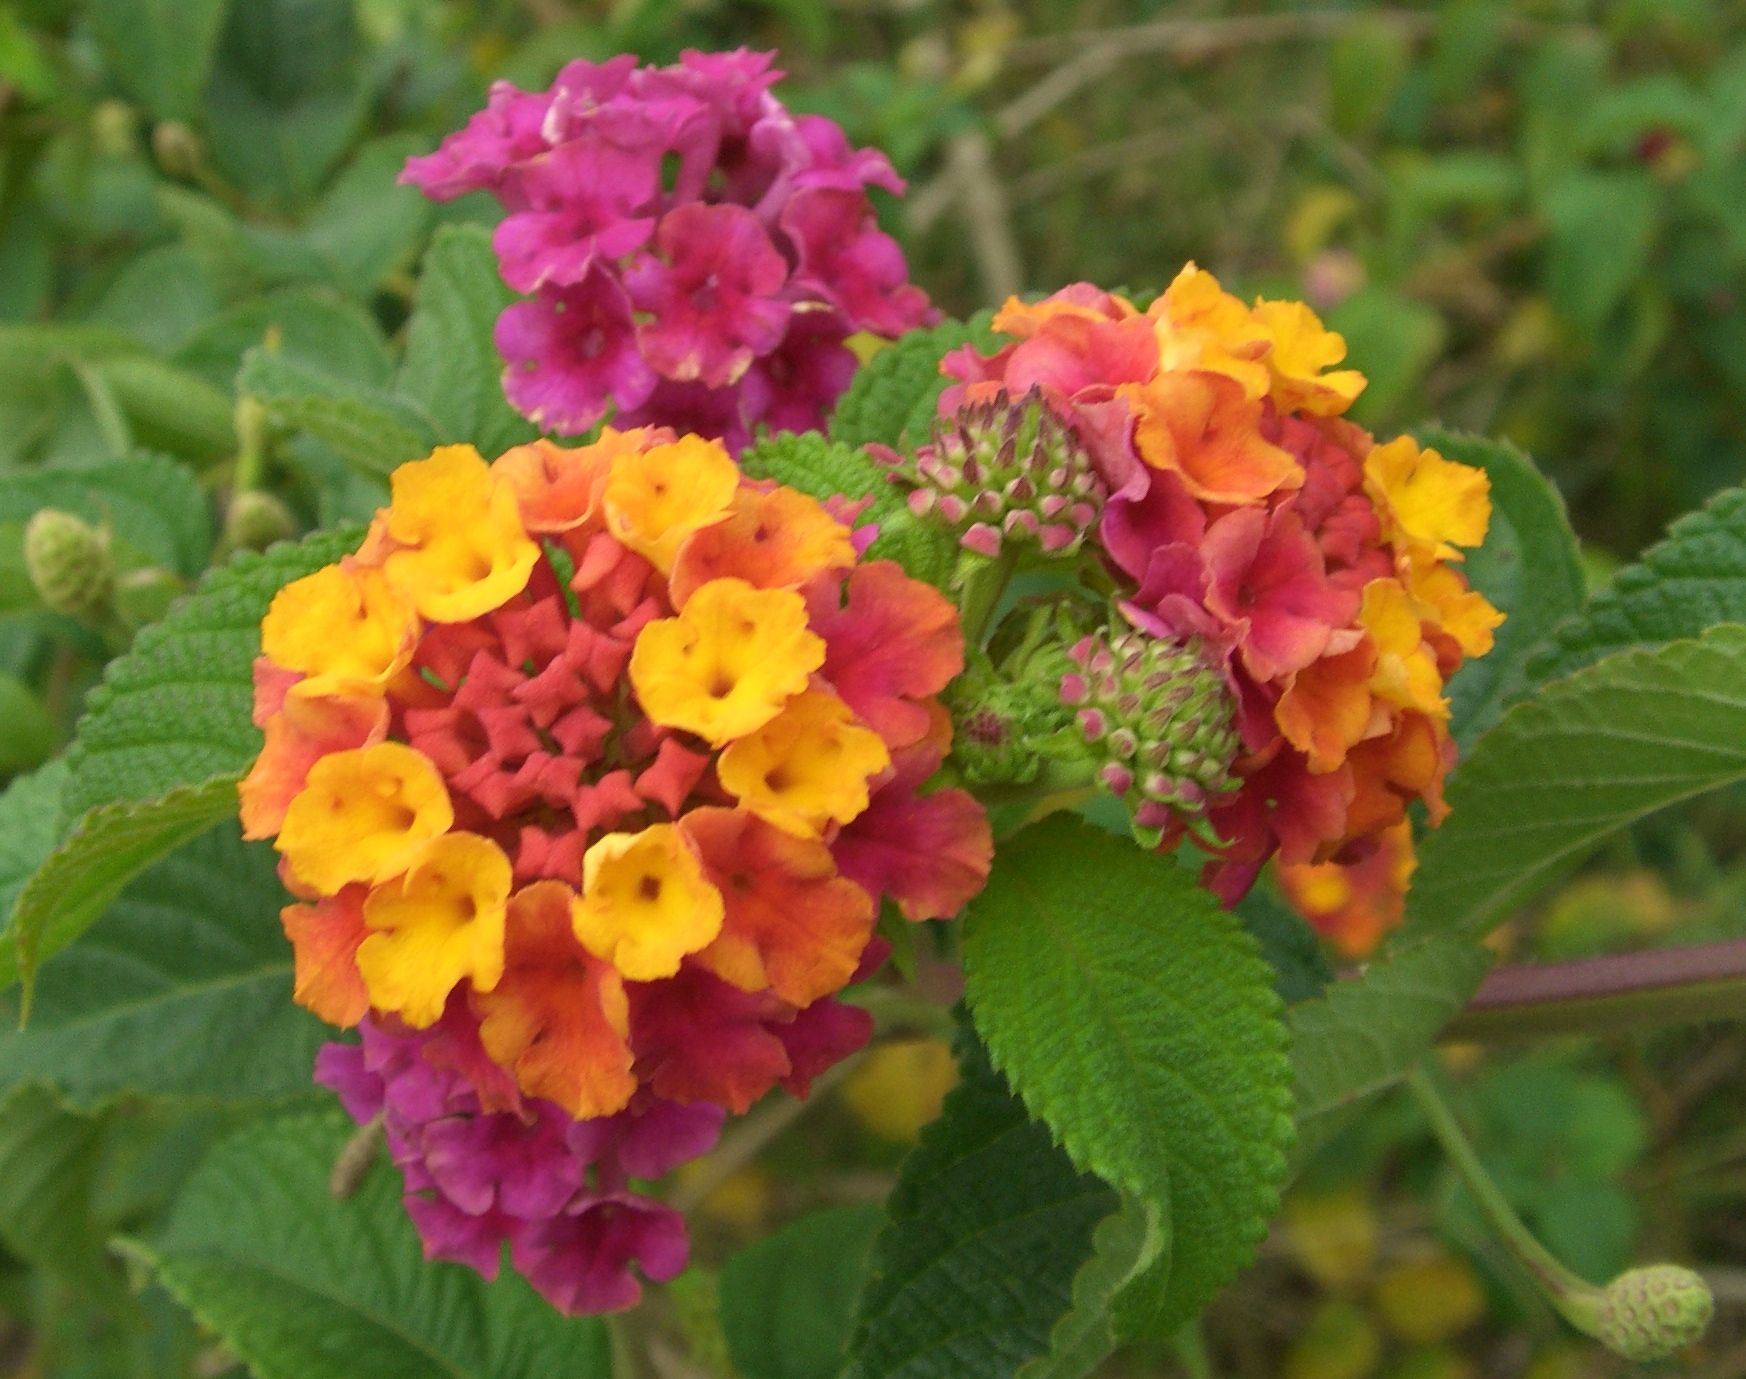 Lantana Is One Of My Favorites An Annual Shrub Type Plant That Grows Fast And Can Fill A 3 X 3 Area In No Time If Planted In Lantana Flower Lantana